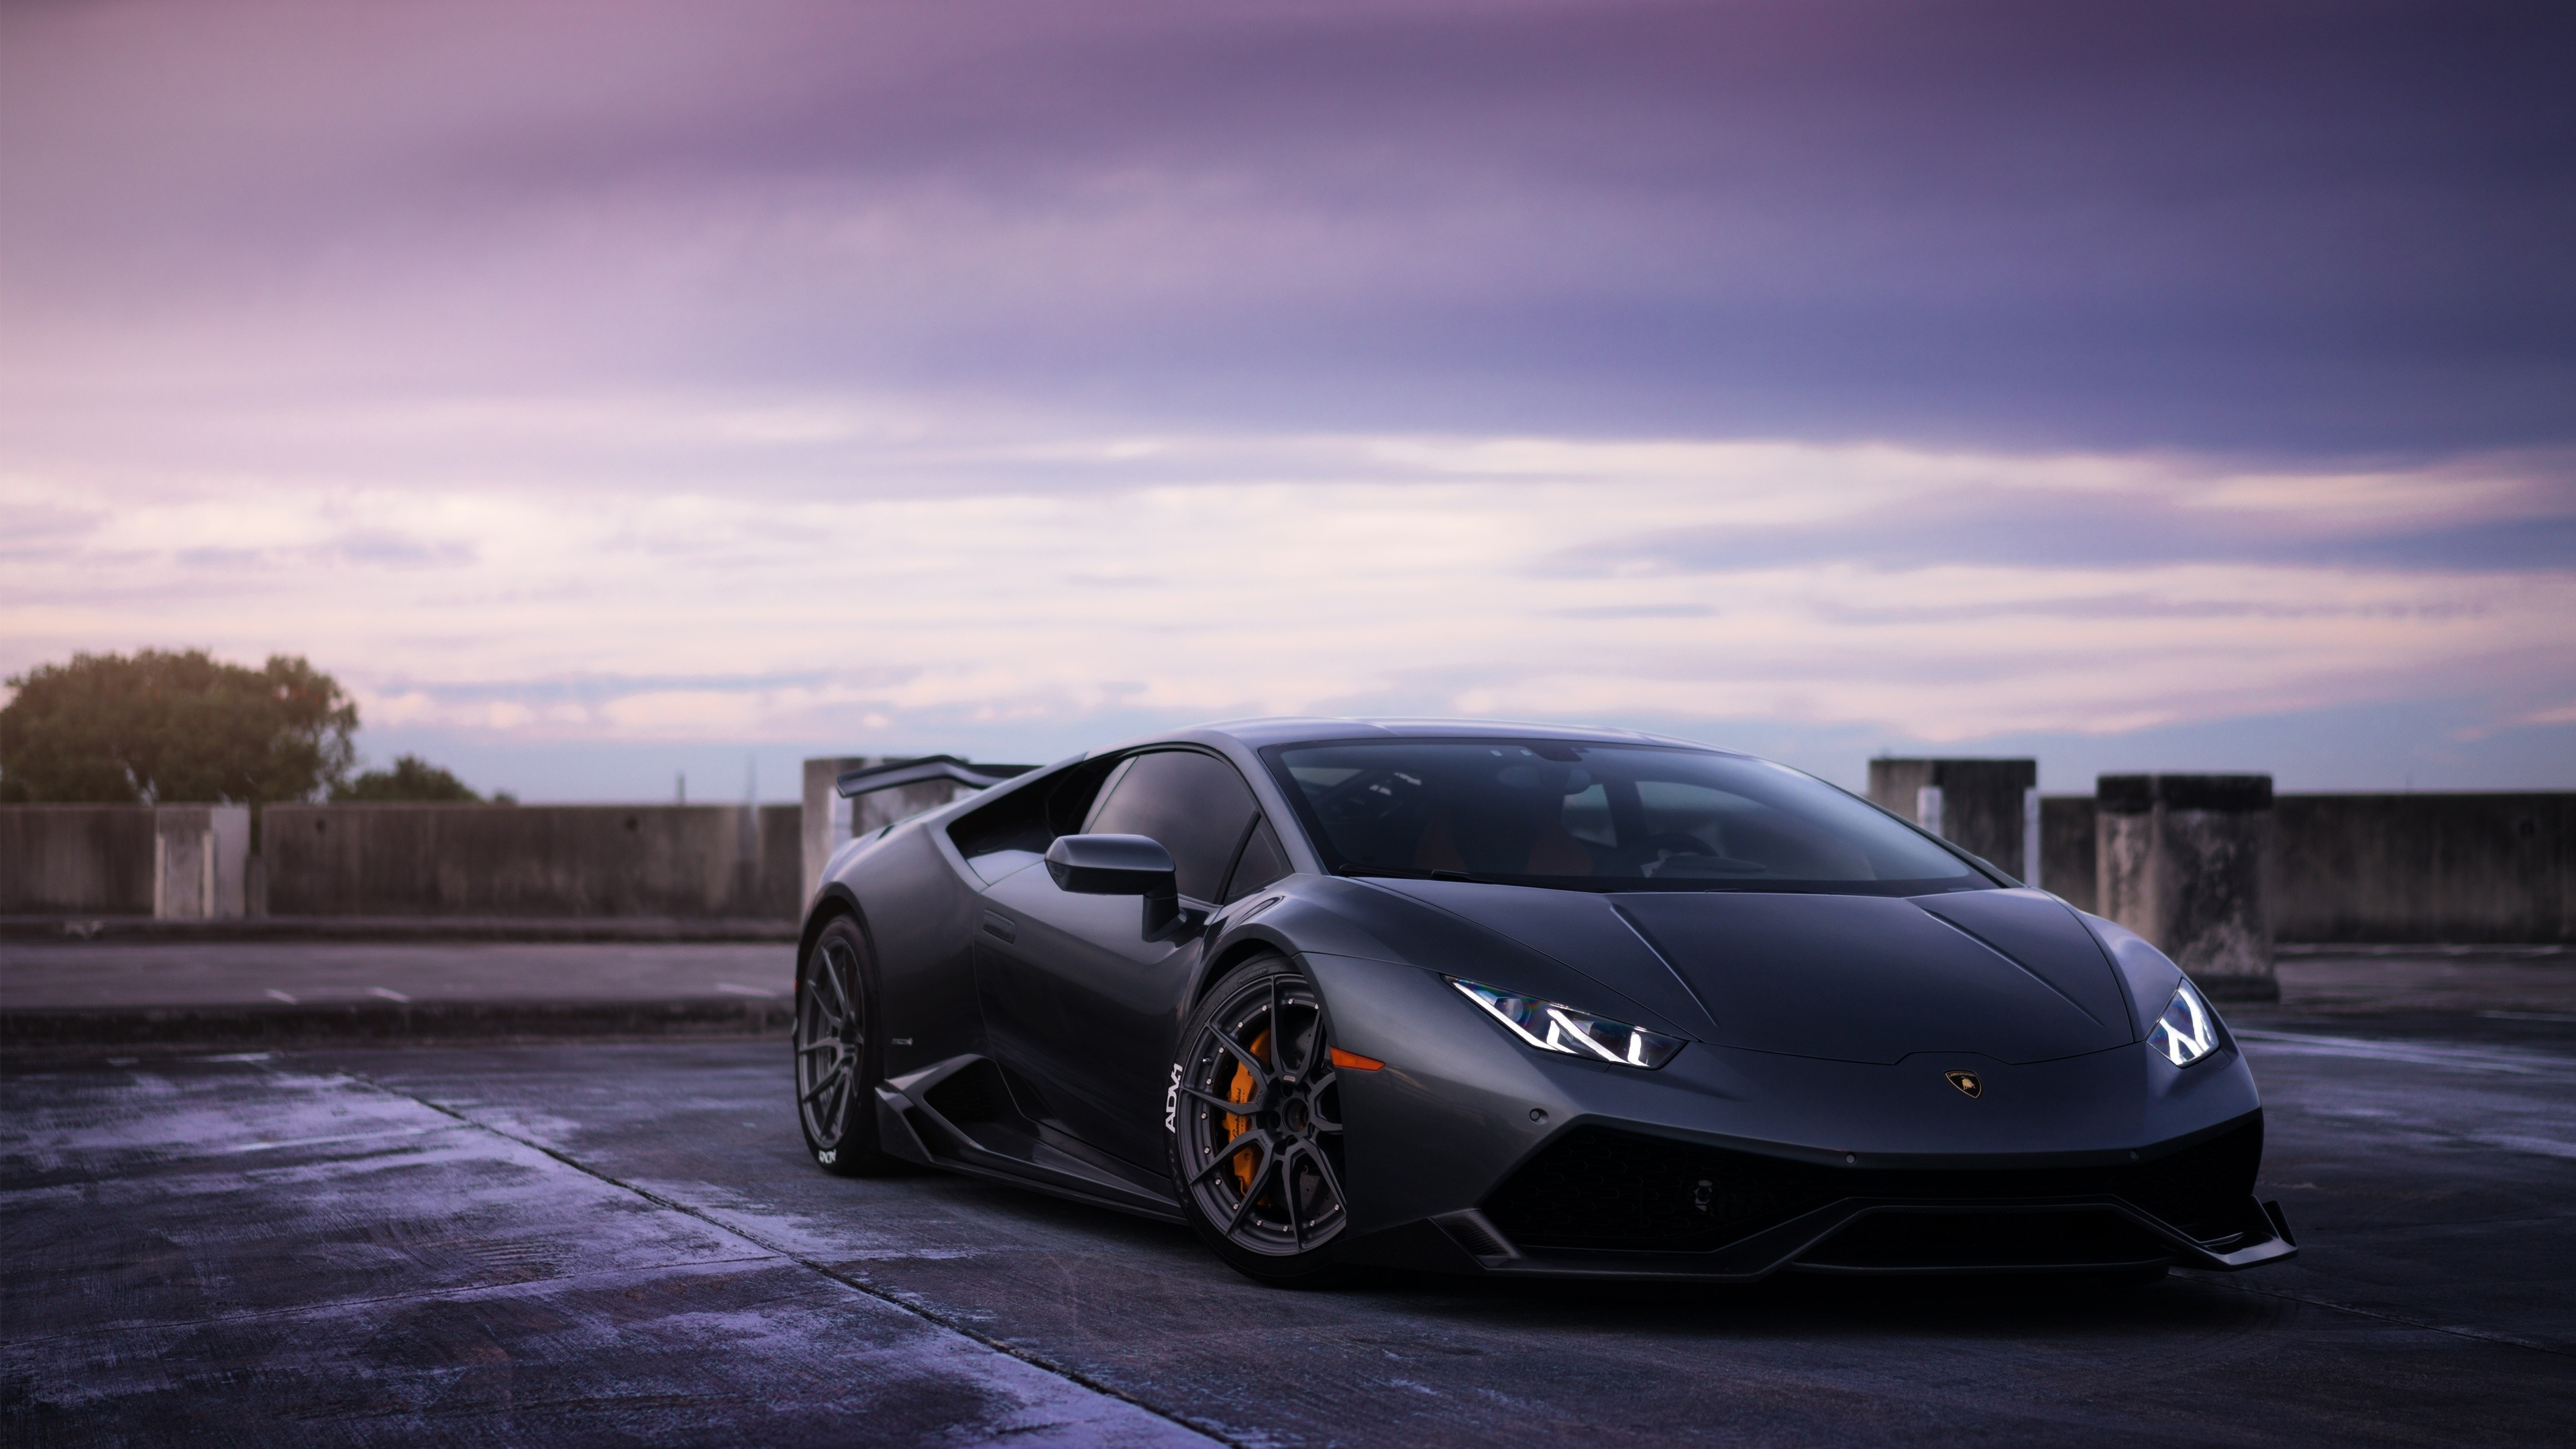 Lamborghini Wallpaper 19 3840x2160